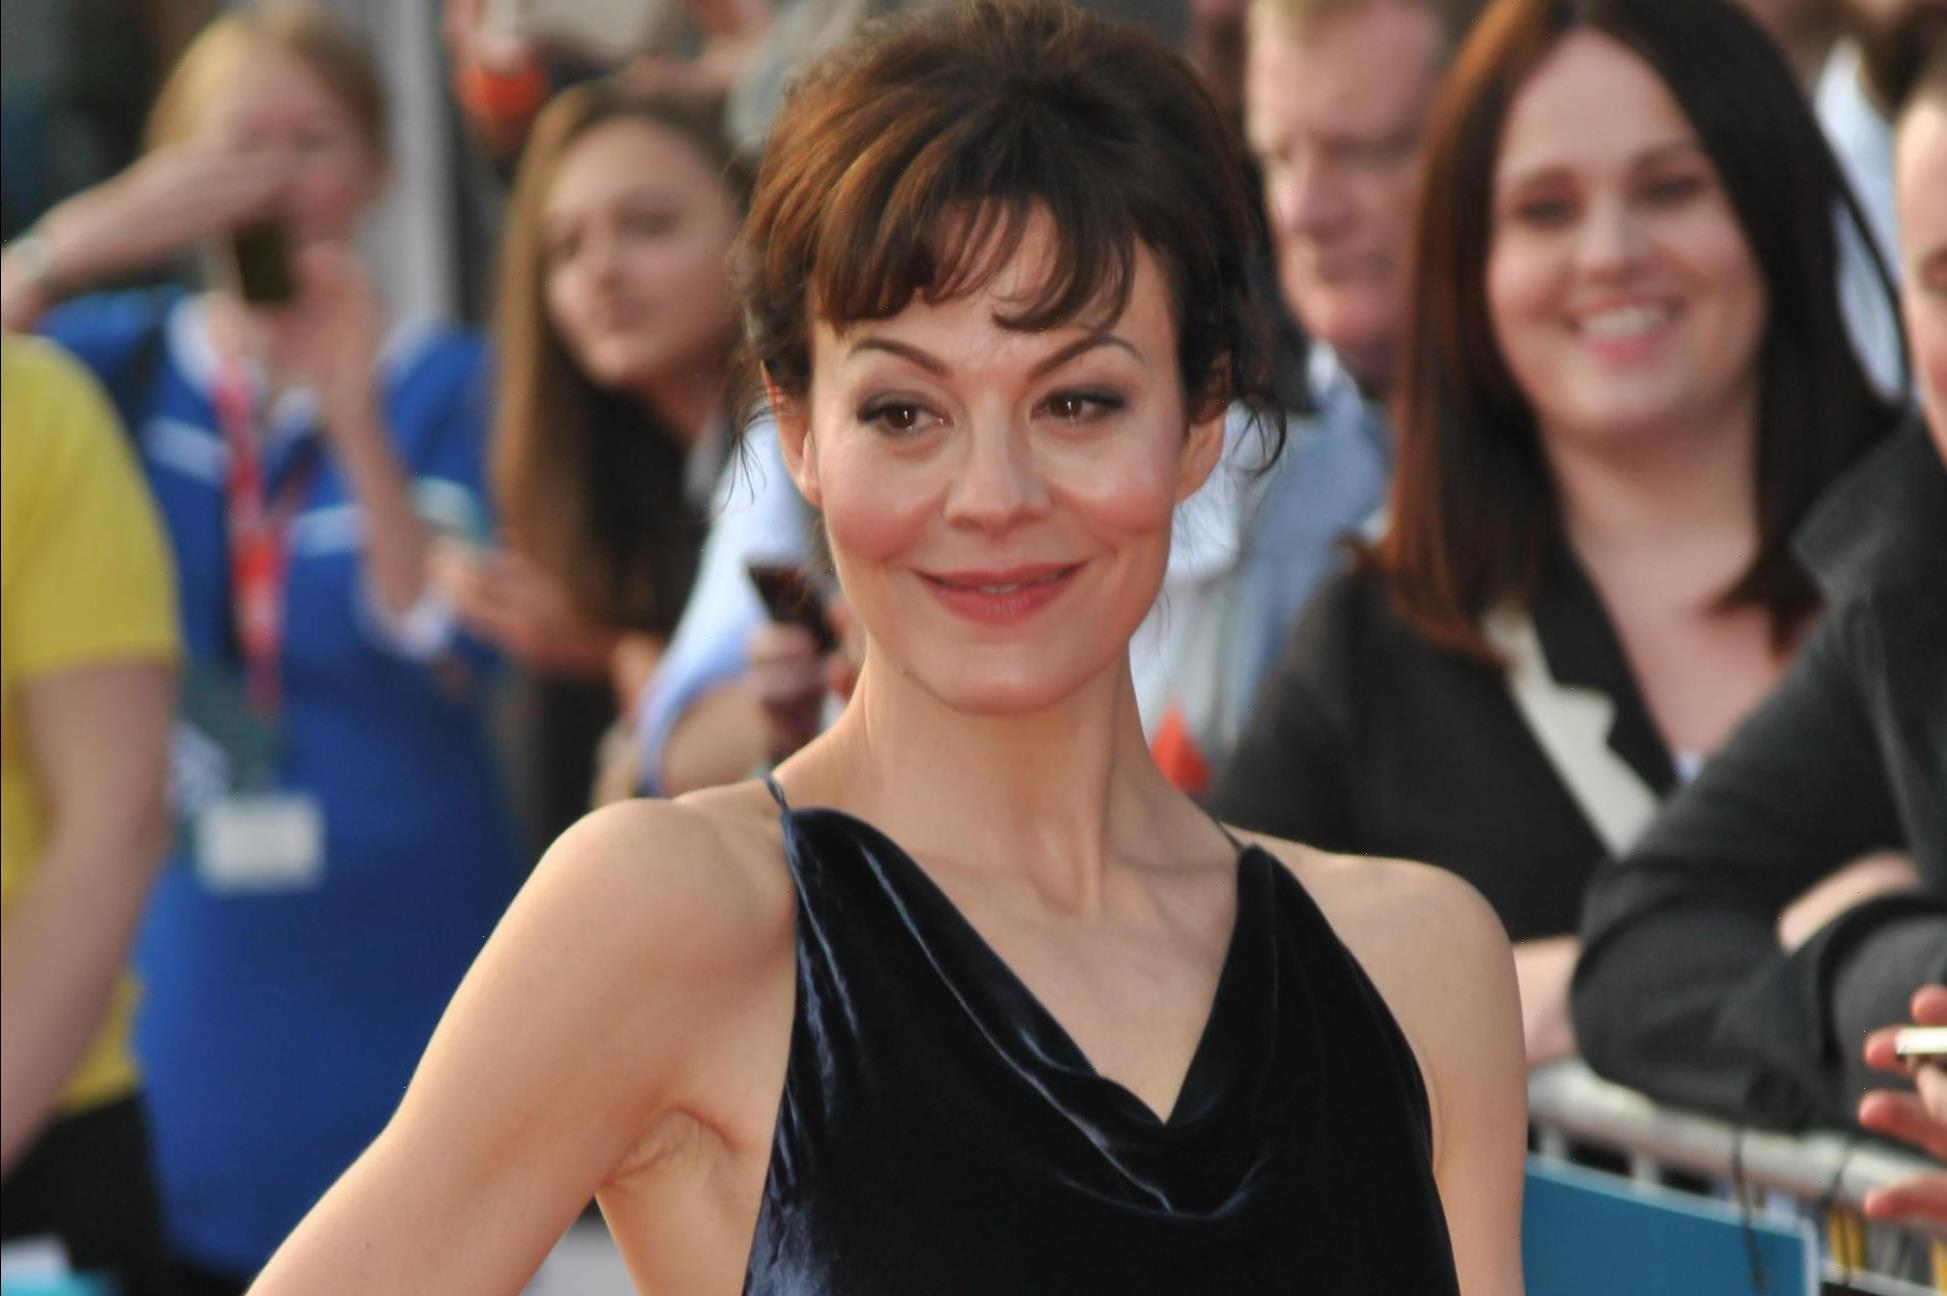 Helen McCrory was still doing charity work in final weeks before death from cancer aged 52